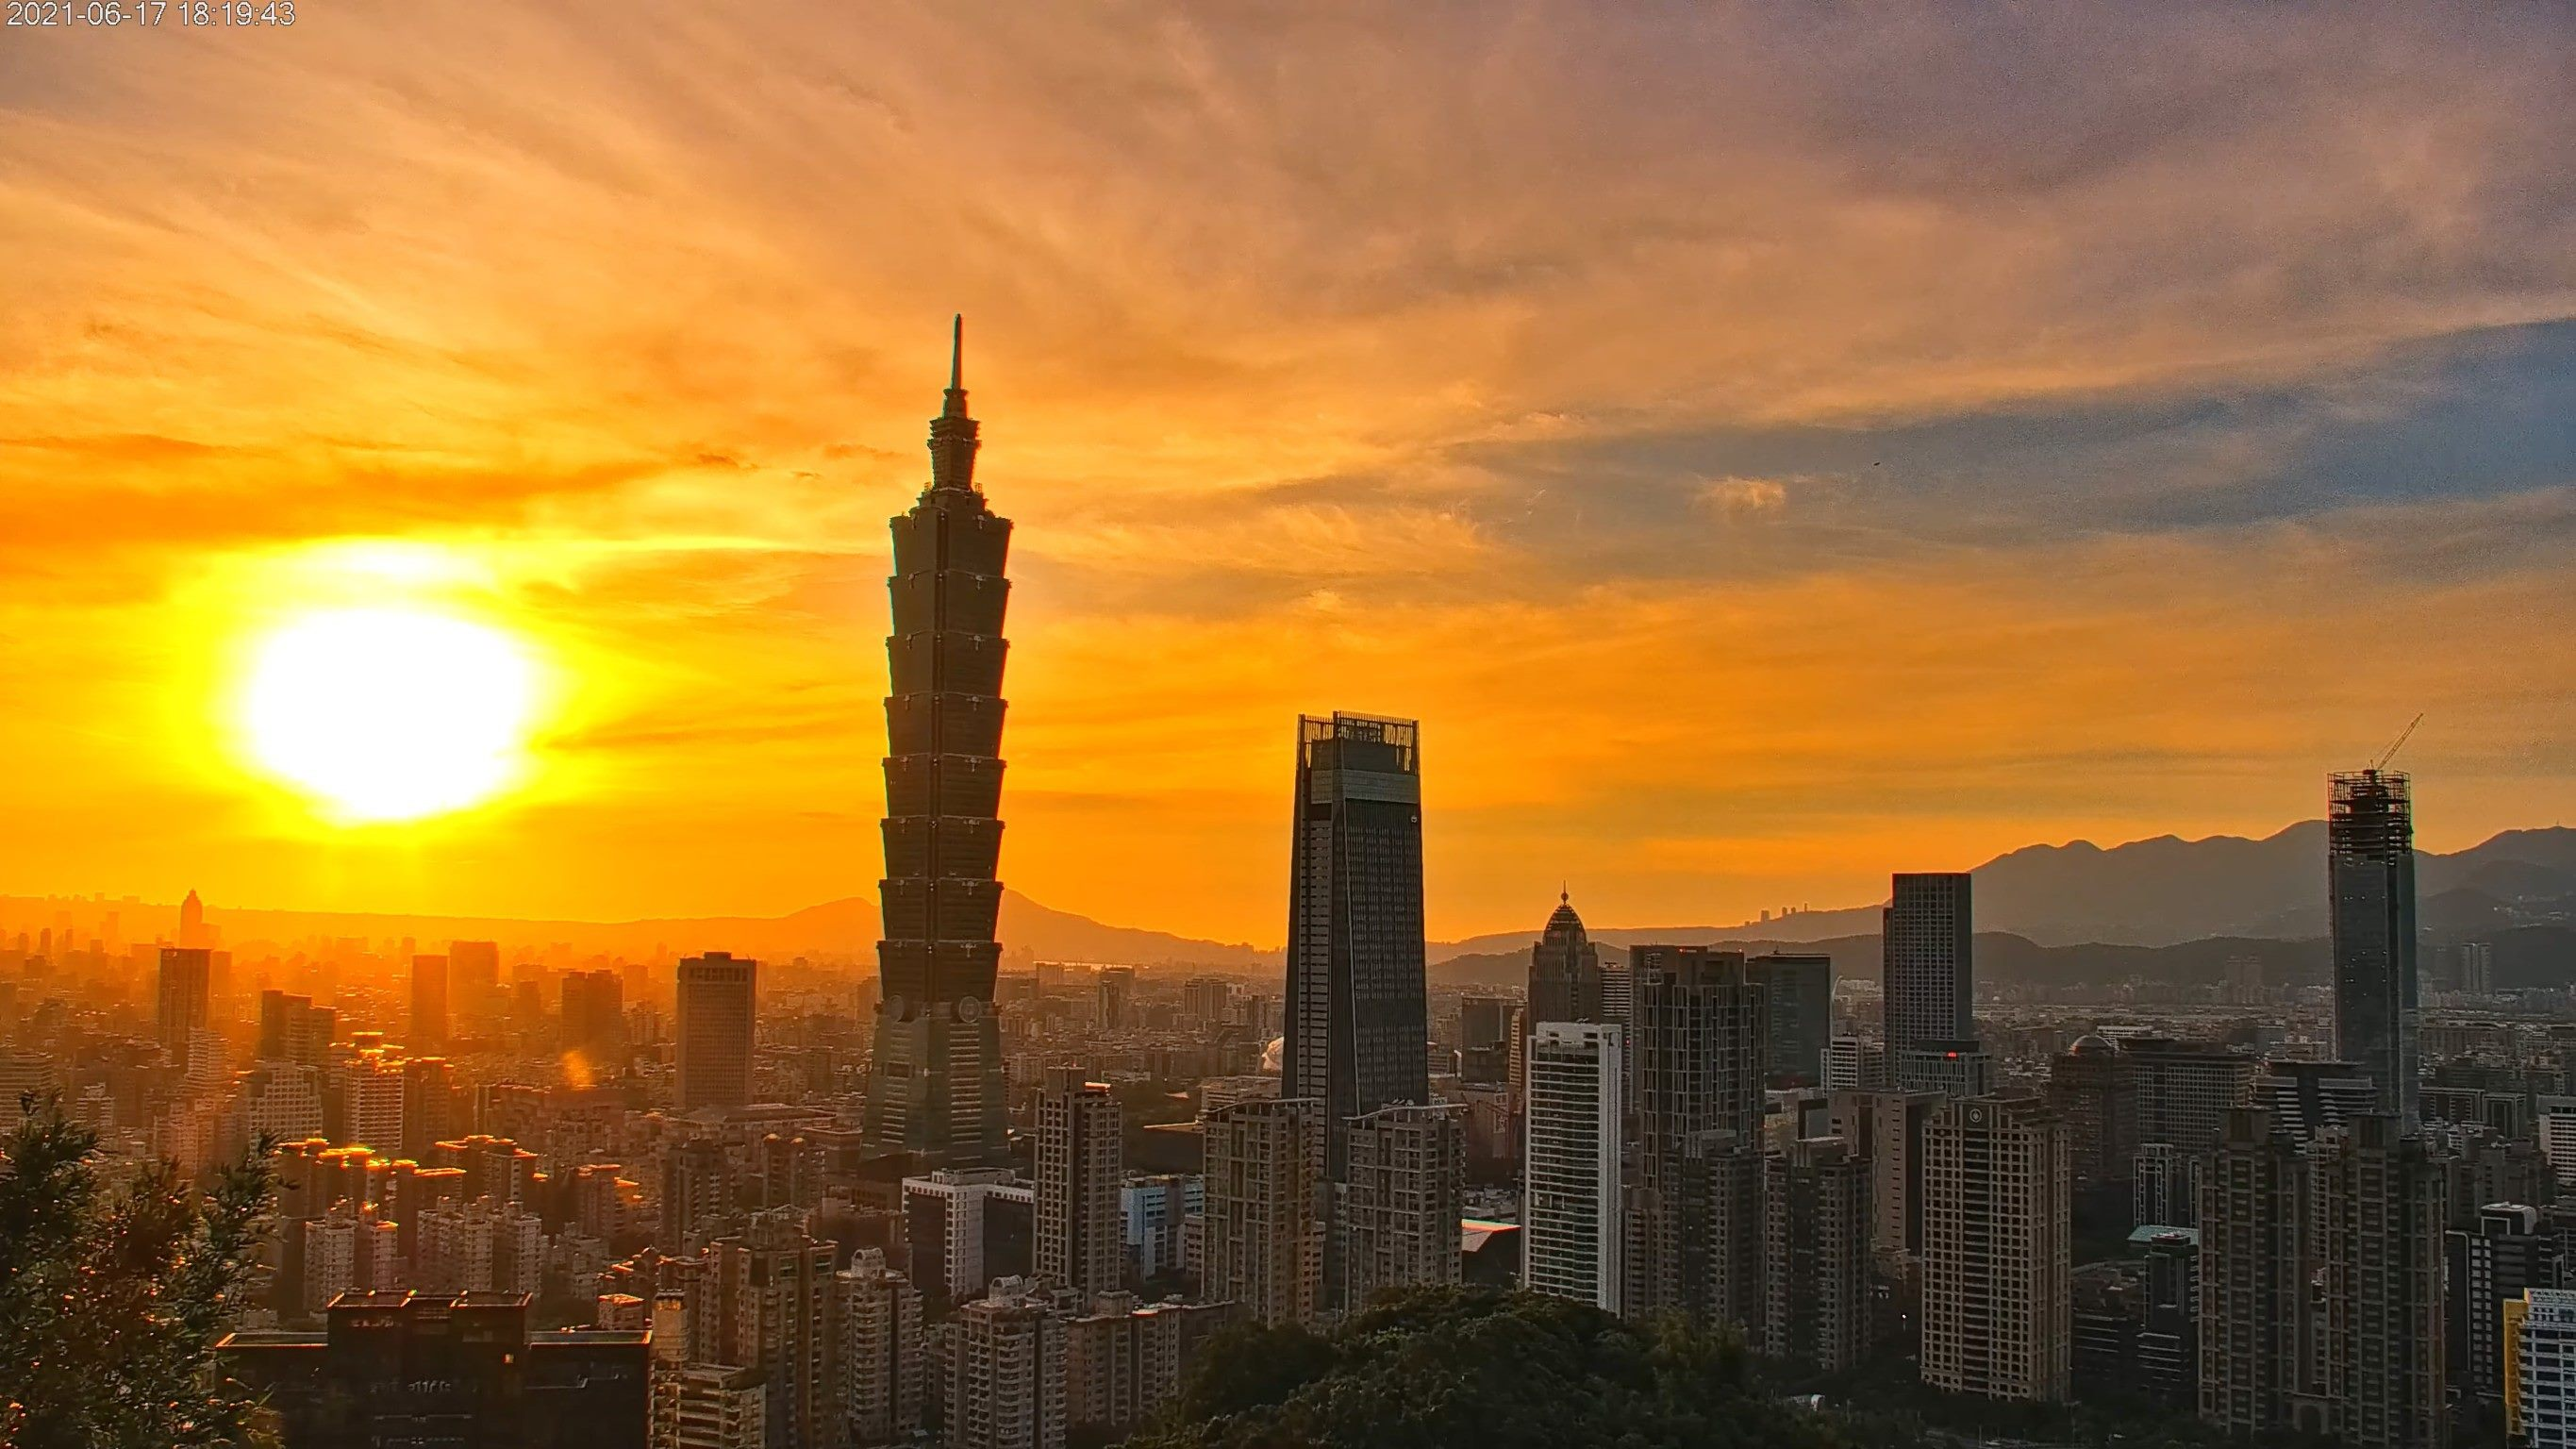 A view of Taipei from the live cam